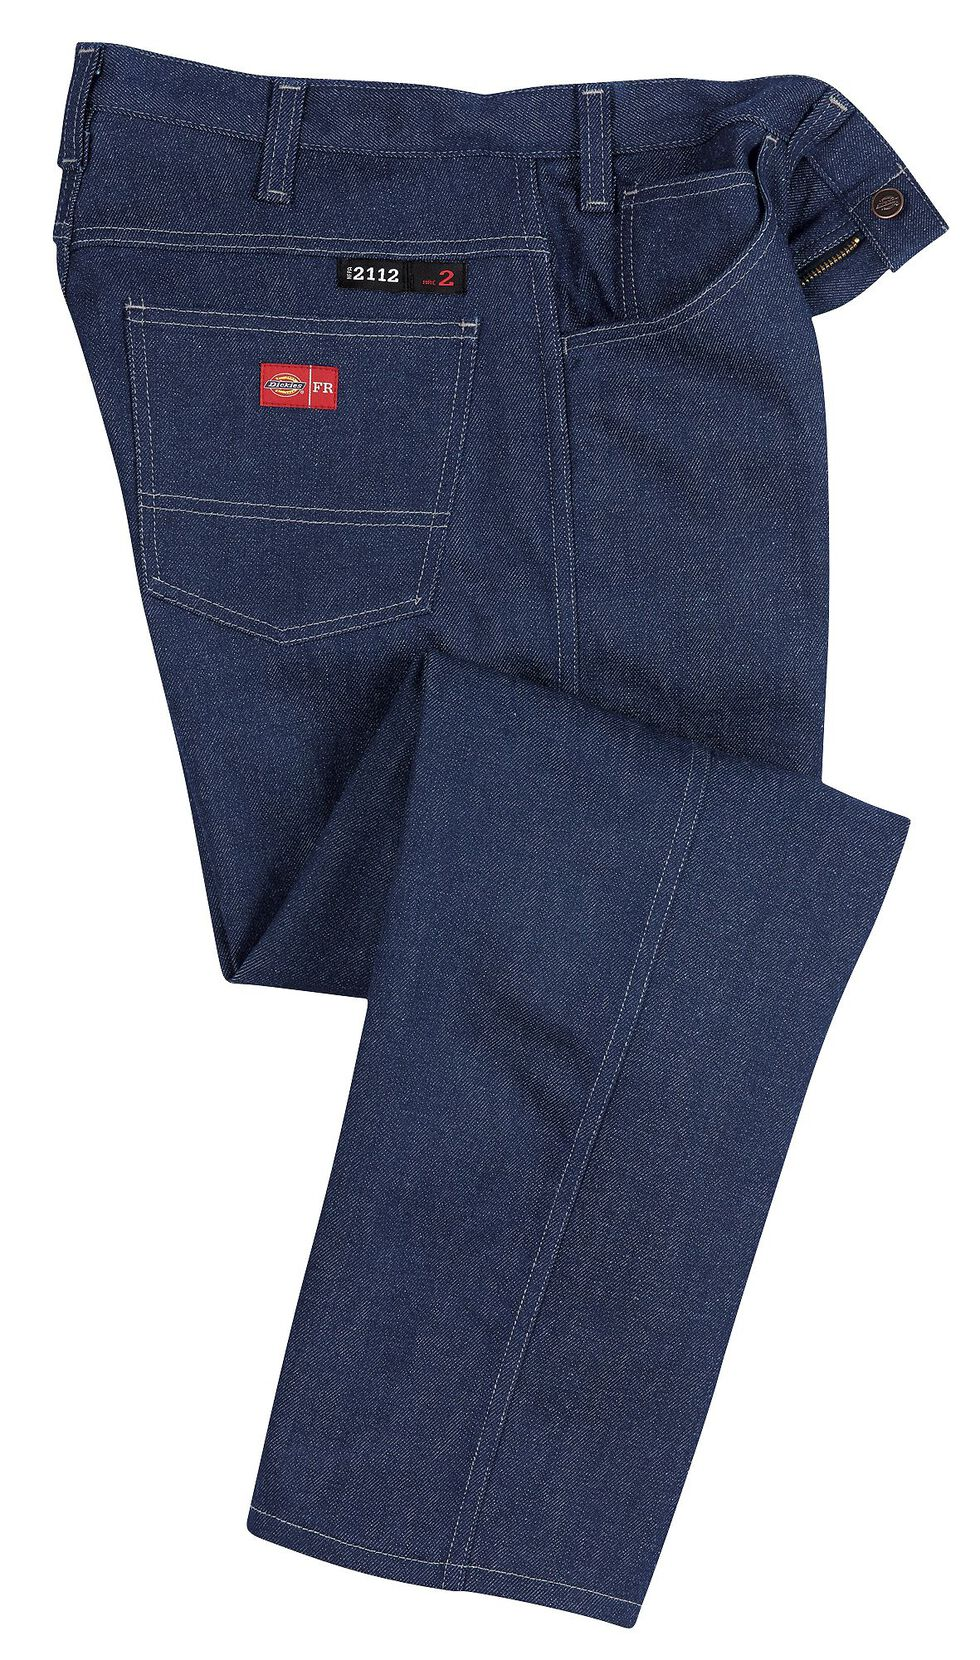 Dickies Relaxed Straight Leg Flame-Resistant Double-Knee Jeans - Big & Tall, Indigo, hi-res